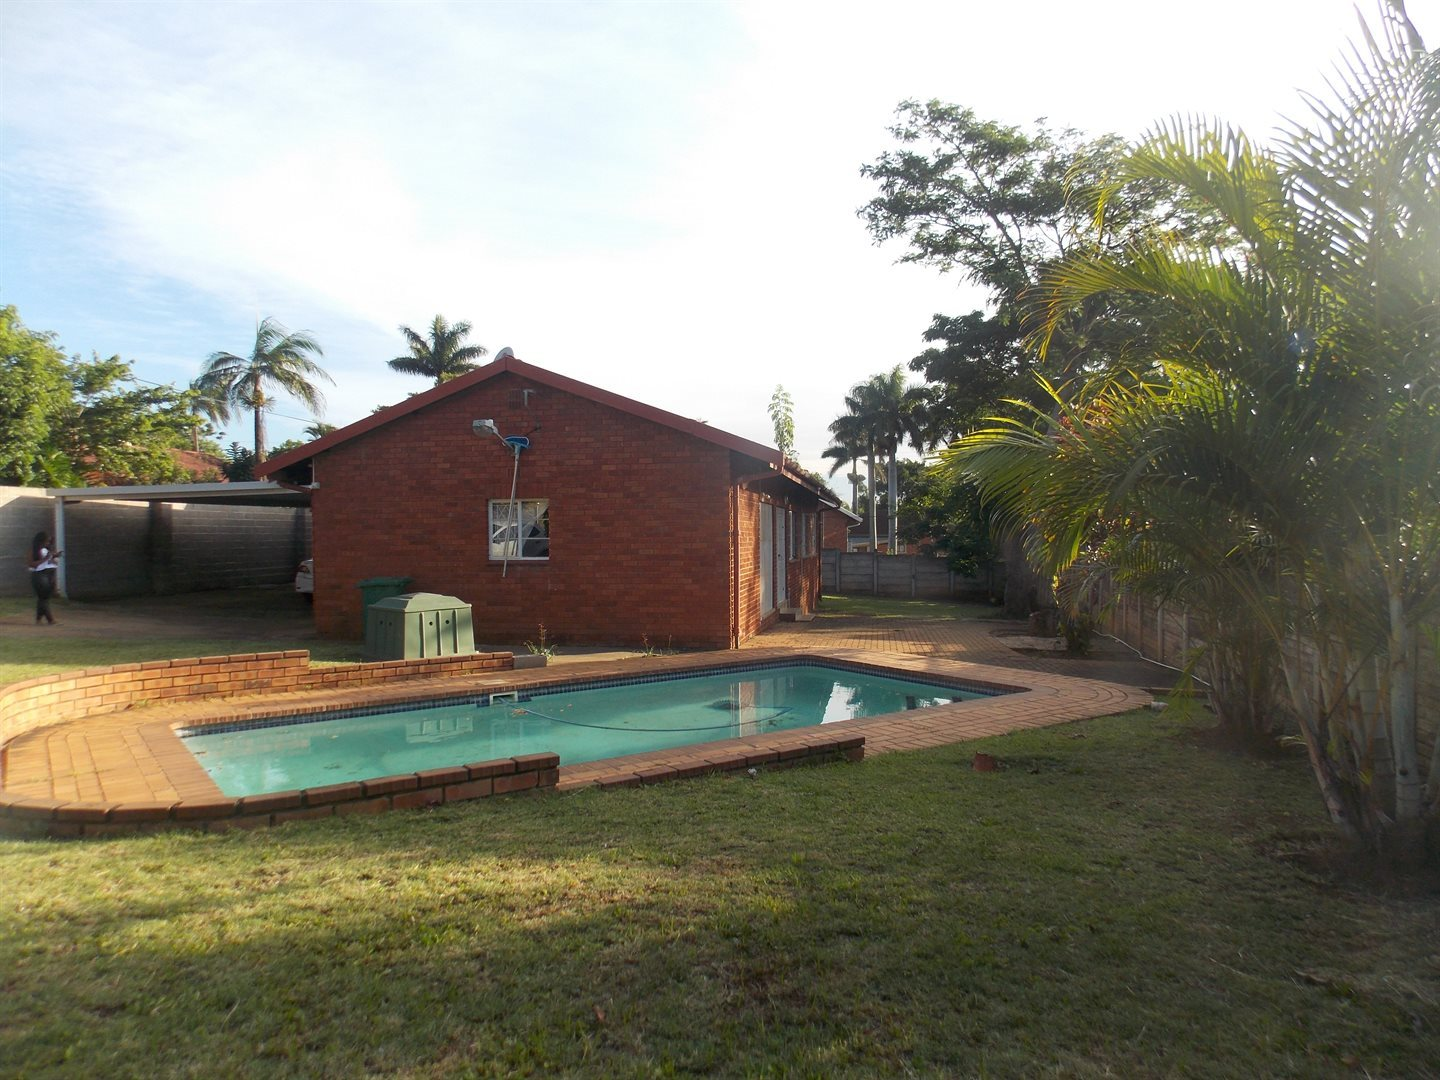 4 Bedroom Houses For Rent Section 8 Empangeni Panorama Property Houses To Rent Panorama